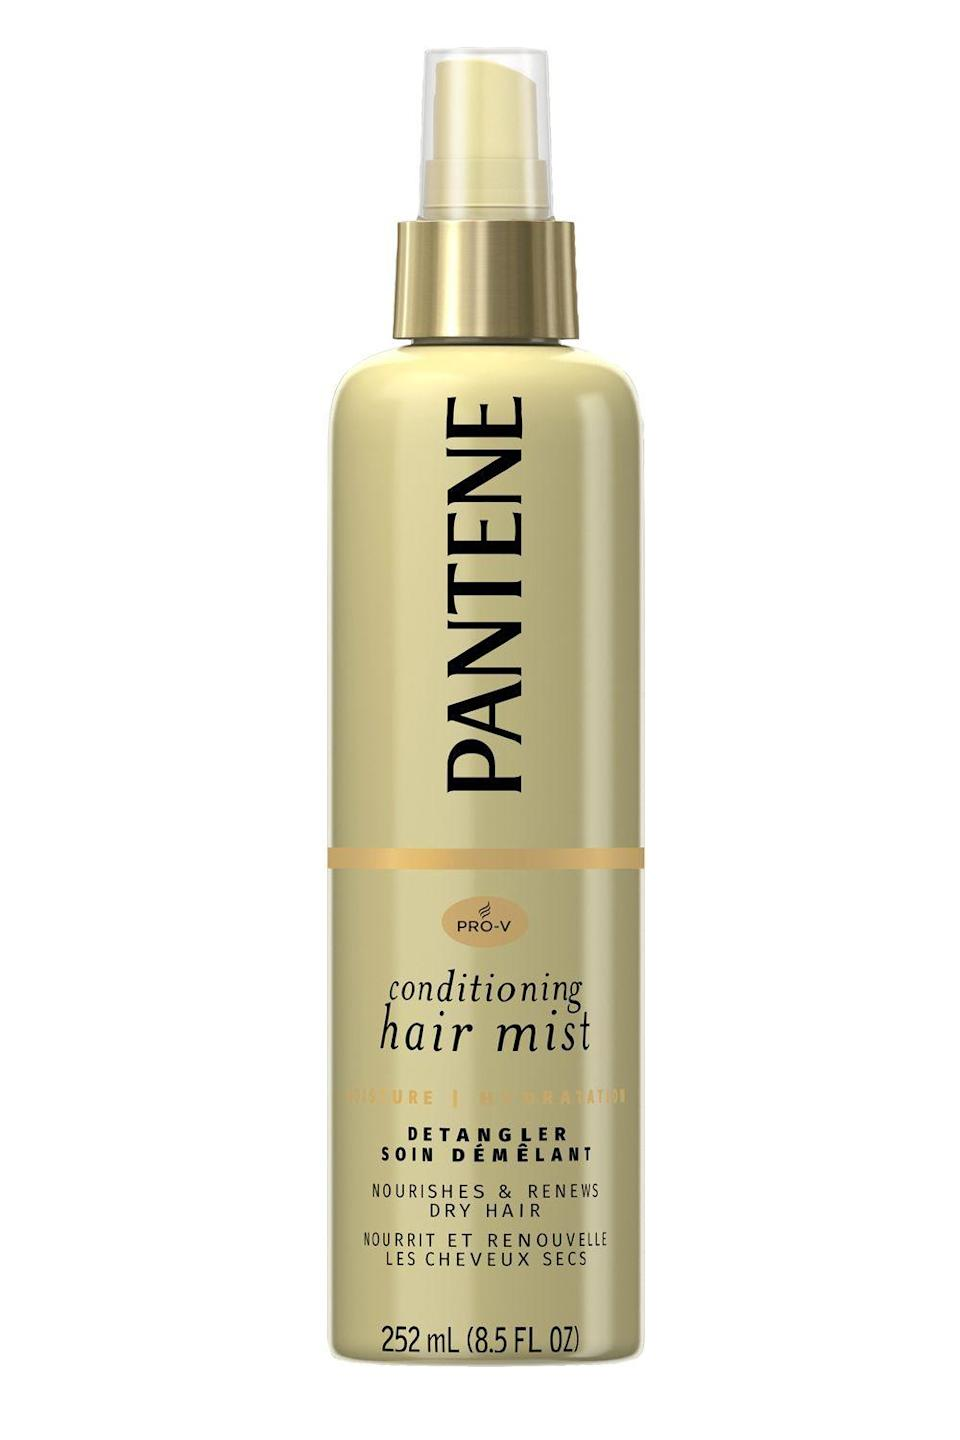 "<p><strong>Pantene</strong></p><p>amazon.com</p><p><strong>$5.97</strong></p><p><a href=""https://www.amazon.com/dp/B008Q8XMV2?tag=syn-yahoo-20&ascsubtag=%5Bartid%7C10049.g.27091073%5Bsrc%7Cyahoo-us"" rel=""nofollow noopener"" target=""_blank"" data-ylk=""slk:Shop Now"" class=""link rapid-noclick-resp"">Shop Now</a></p><p>Proof that you don't need to drop an entire paycheck to get yourself a really good detangler? This <a href=""https://www.cosmopolitan.com/style-beauty/beauty/g25019634/best-drugstore-shampoo-brands/"" rel=""nofollow noopener"" target=""_blank"" data-ylk=""slk:drugstore"" class=""link rapid-noclick-resp"">drugstore</a> option from Pantene. The lightweight mist <strong>uses panthenol to hydrate and detangle wet or damp hair</strong> without weighing it down for feeling sticky.</p>"